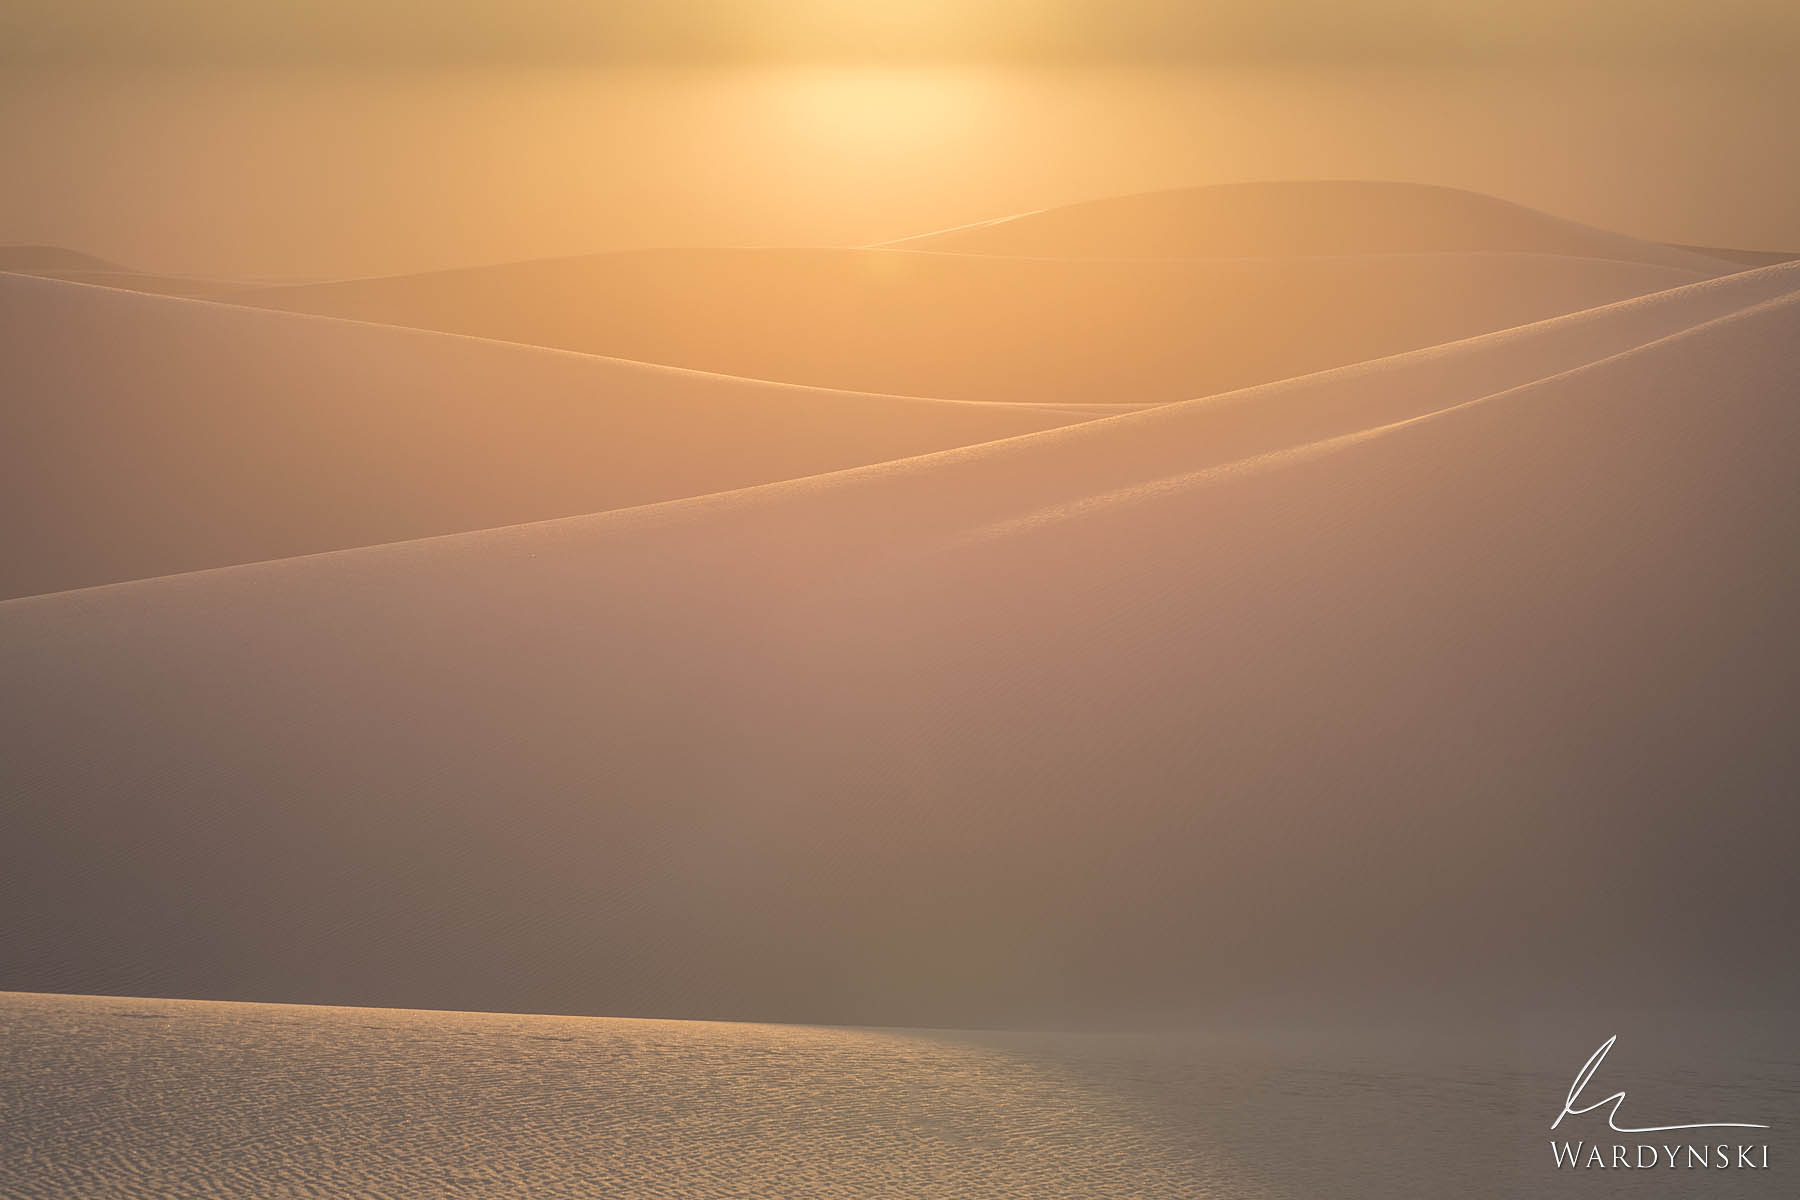 Fine Art Print | Limited Edition of 50 The rolling gypsum dunes of White Sands National Park beautifully reflect the last golden...